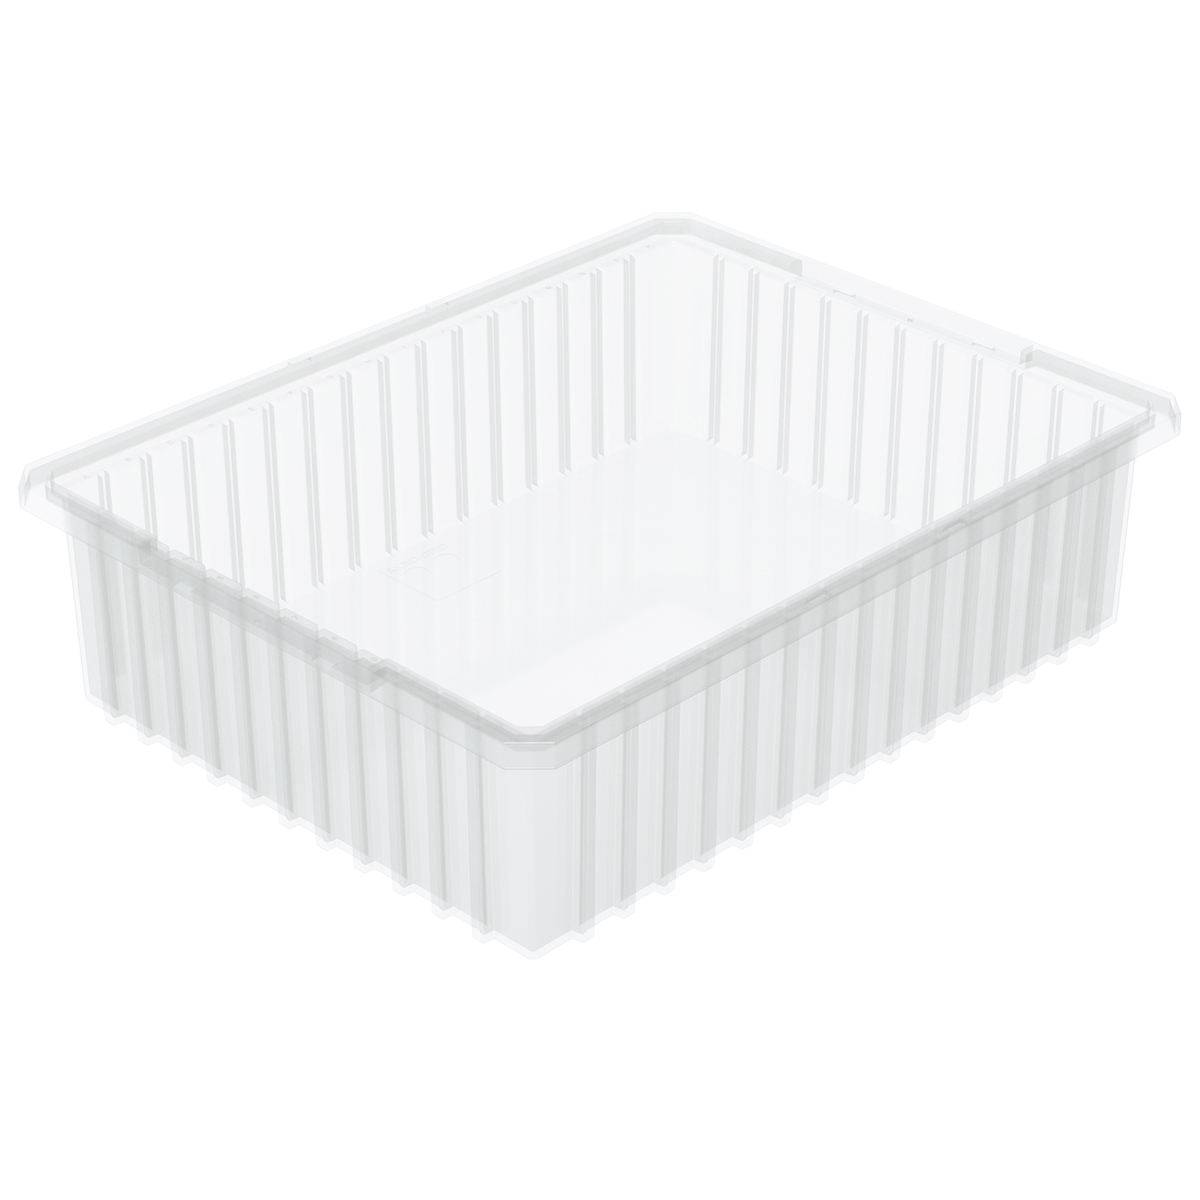 Akro-Grid Dividable Box 22-3/8 x 17-3/8 x 6, Clear (33226SCLAR).  This item sold in carton quantities of 4.